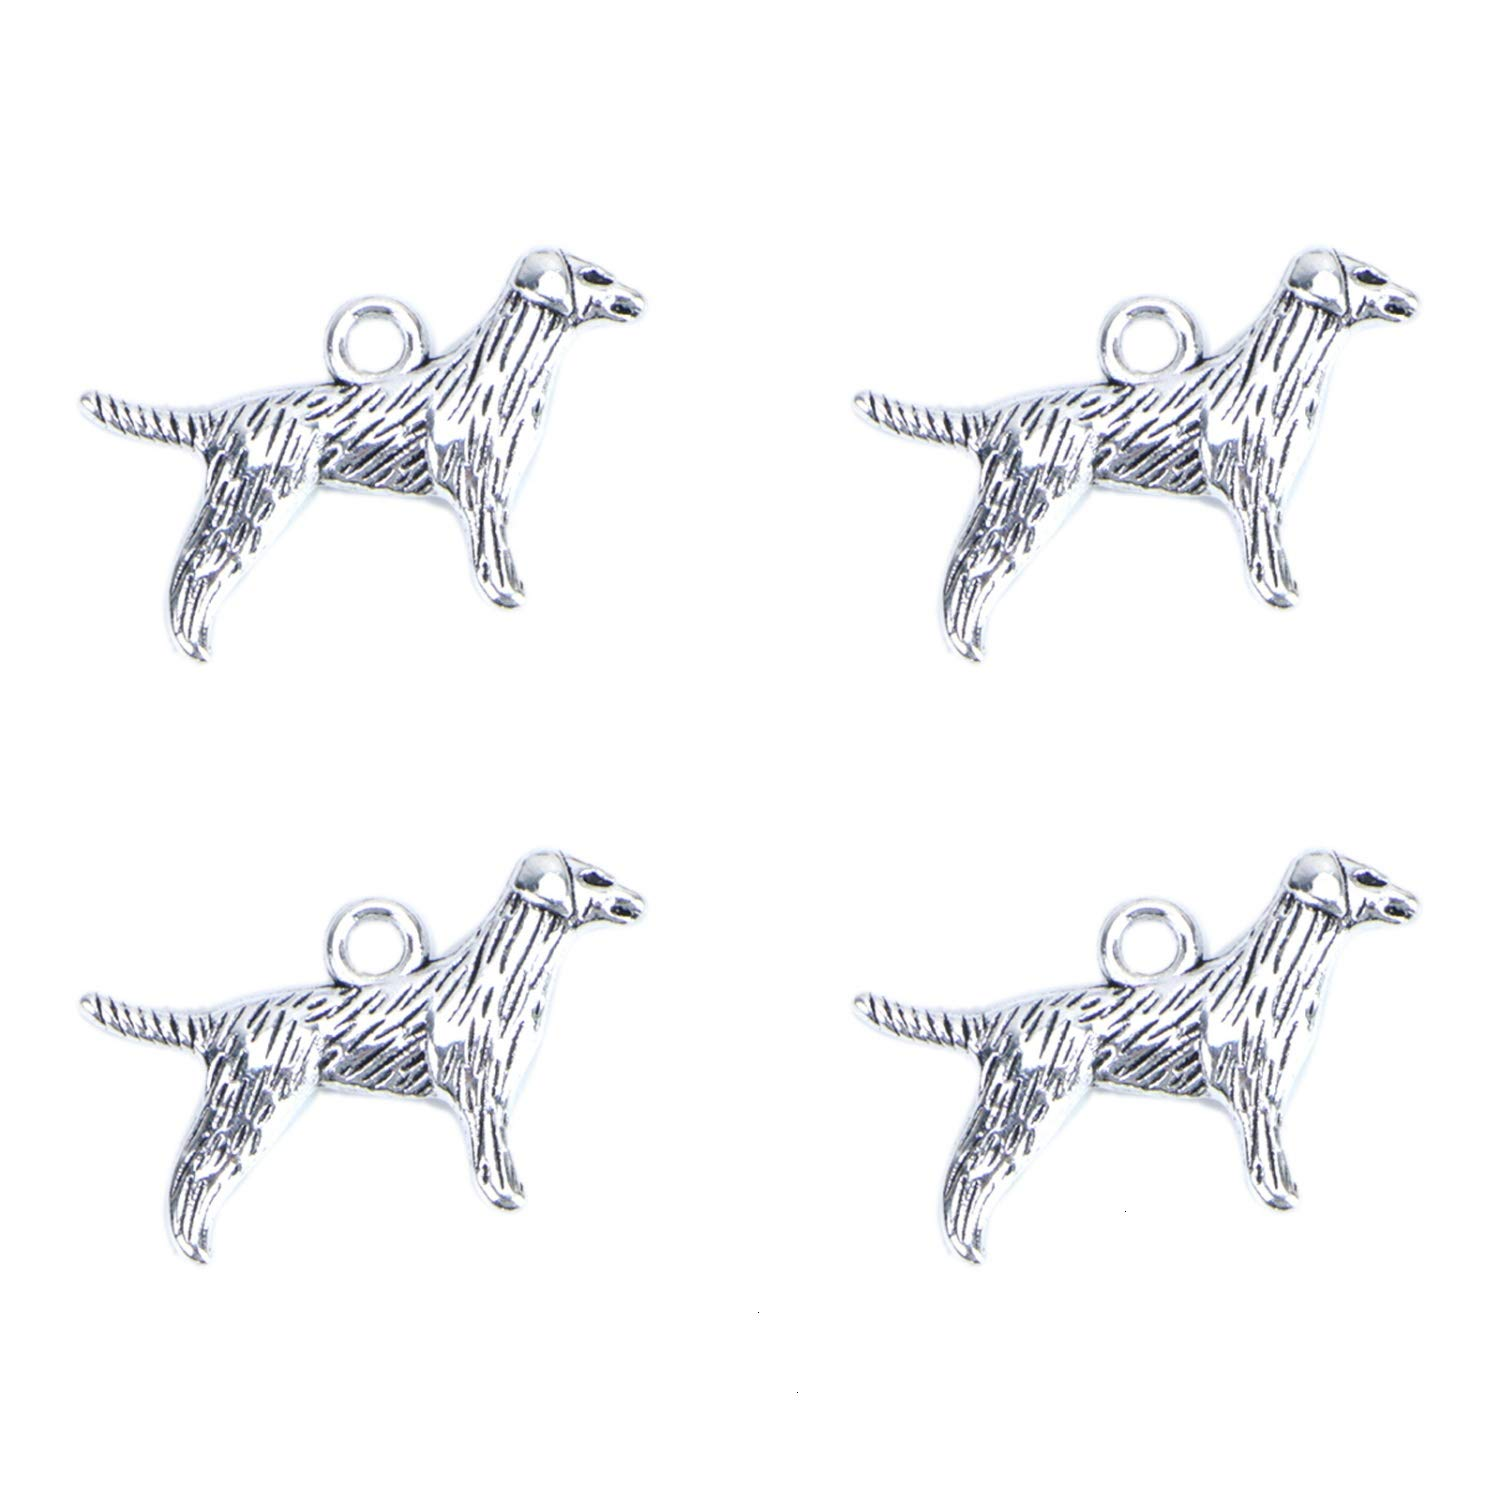 Monrocco 40pcs Tibetan Antique Dog Charms Pendants for Jewelry Making Crafting Key Chain Bracelet Necklace Earrings